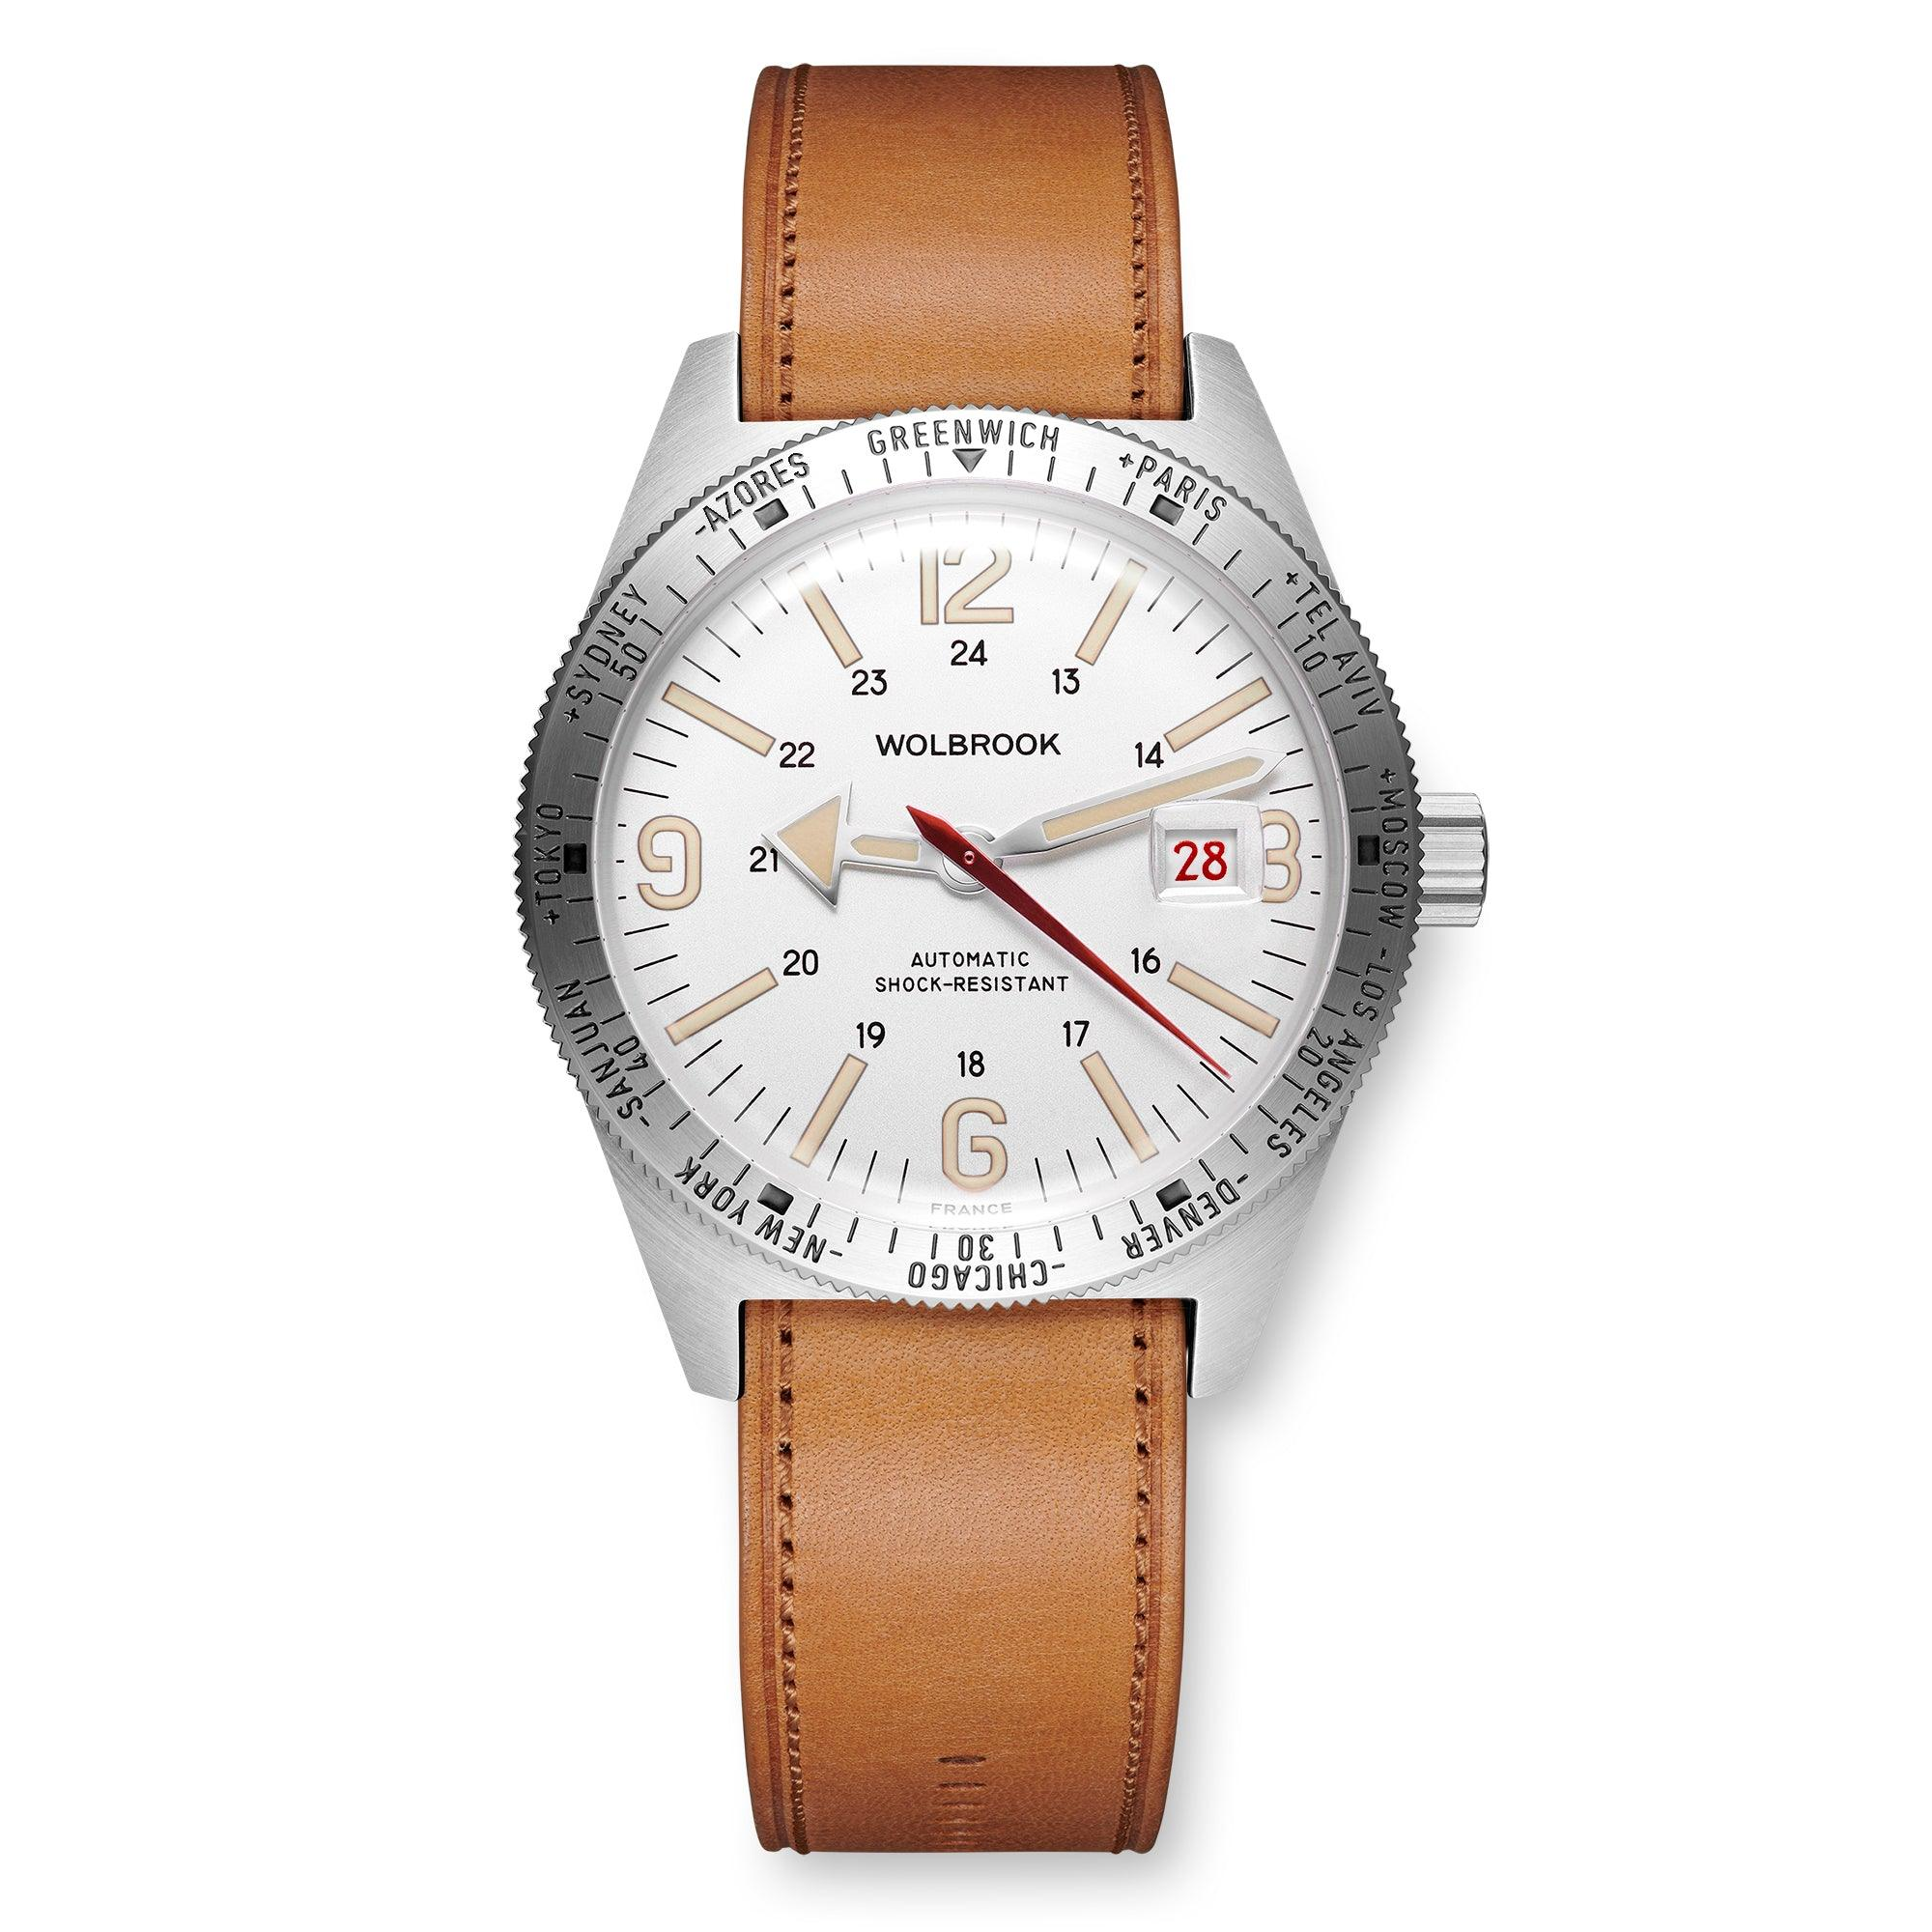 Skindiver WT Automatic Watch, White dial with Vintage Super-LumiNova and Steel Bezel